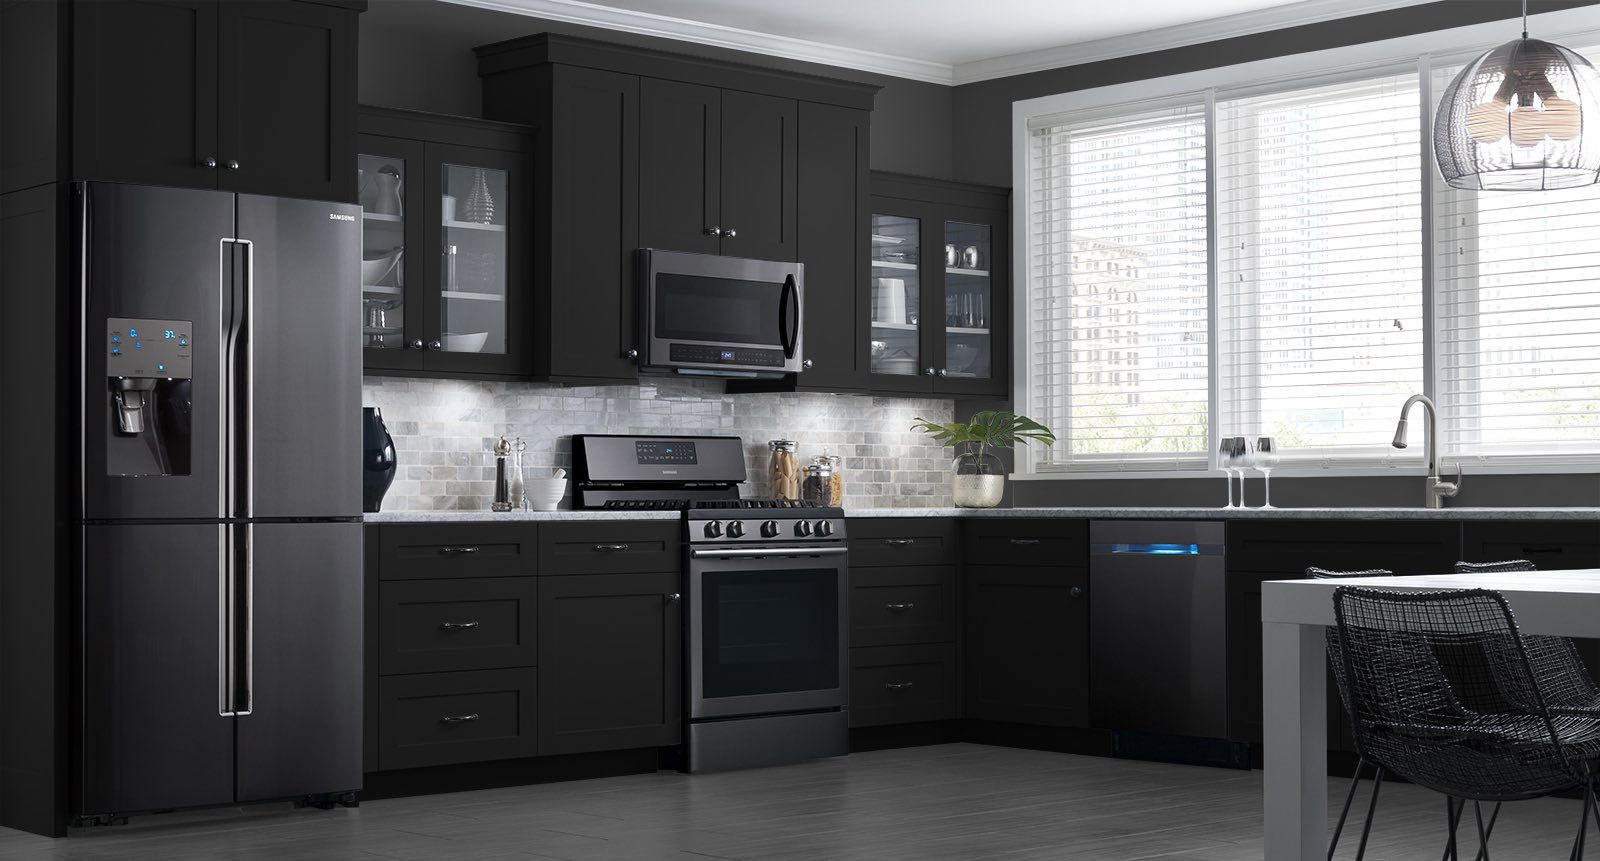 Home Appliances Kitchen Laundry Appliances Kitchen Design Decor Kitchen Design Trends Black Kitchen Cabinets